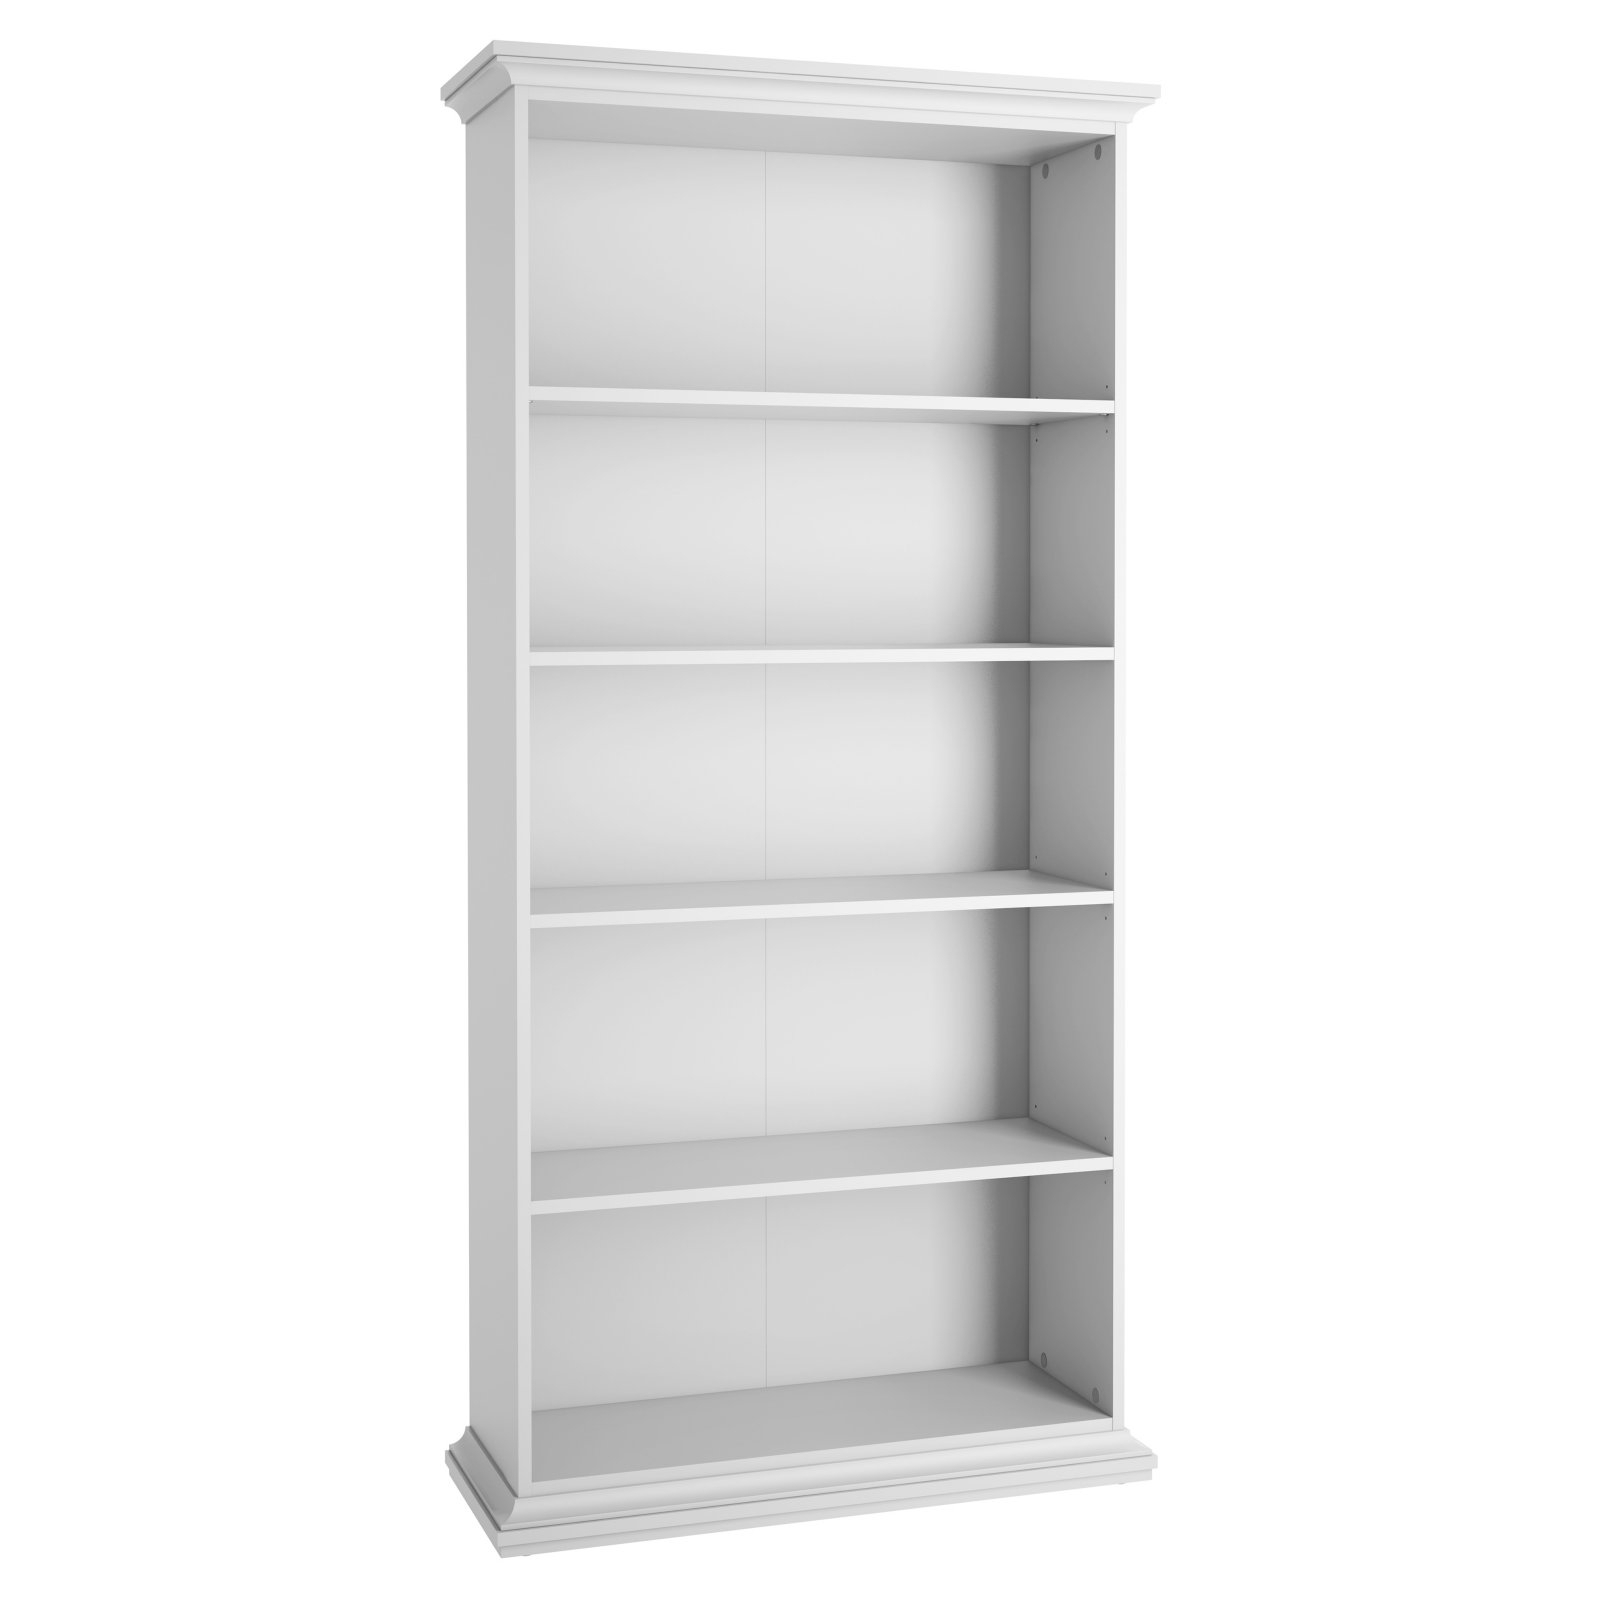 2020 Mdb Standard Bookcases Pertaining To Tvilum Maison Park Standard Bookcase – White In (View 14 of 20)